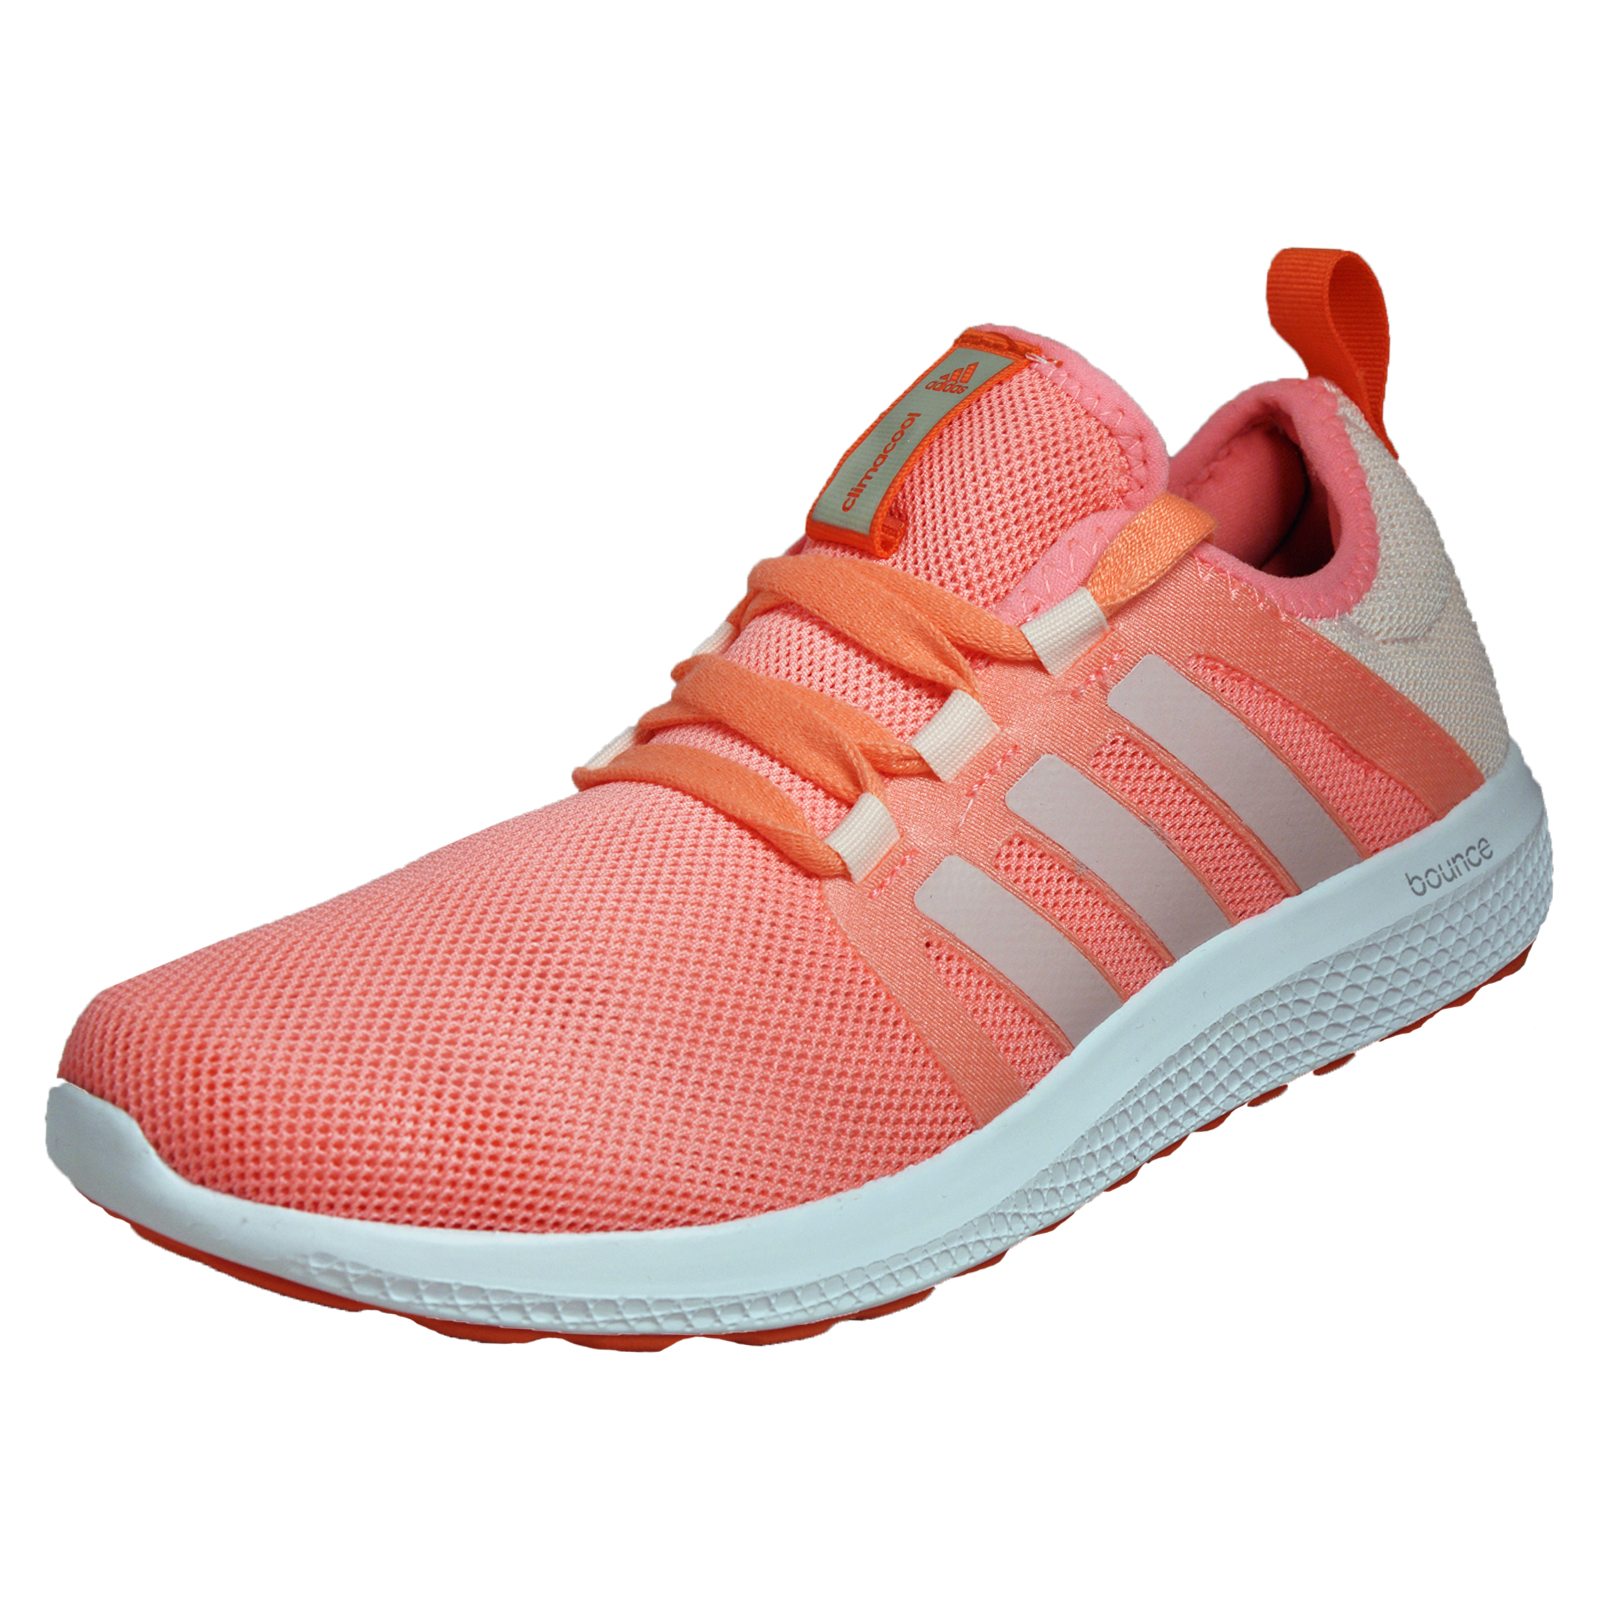 8ef22e0ba Details about Adidas ClimaCool CC Fresh Bounce Womens Running Shoes Fitness  Trainers Peach